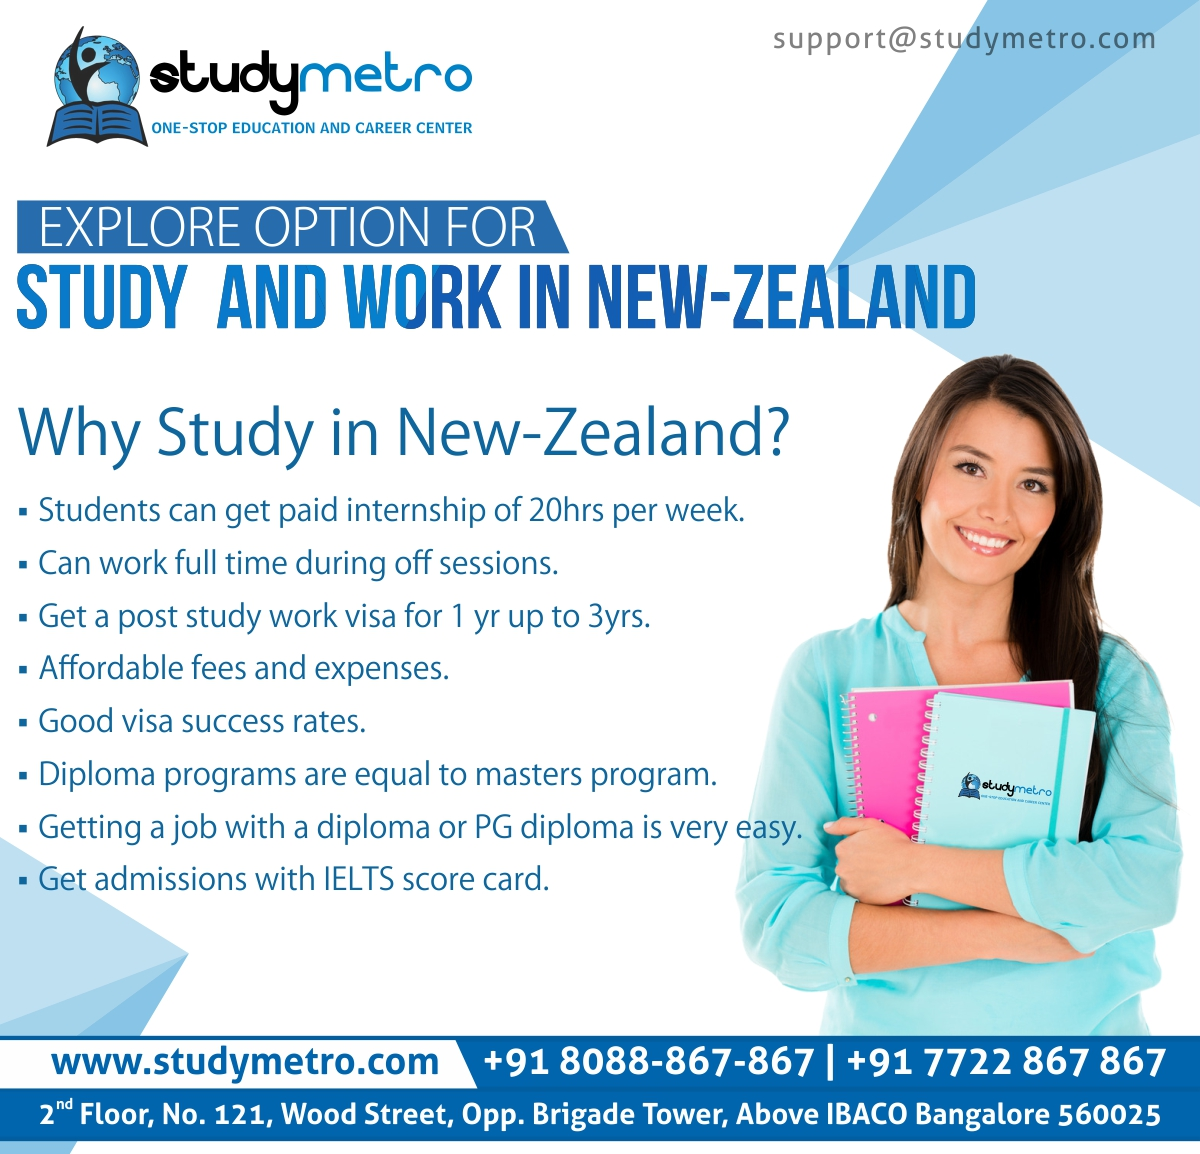 Study and Work in New Zealand | Study Metro